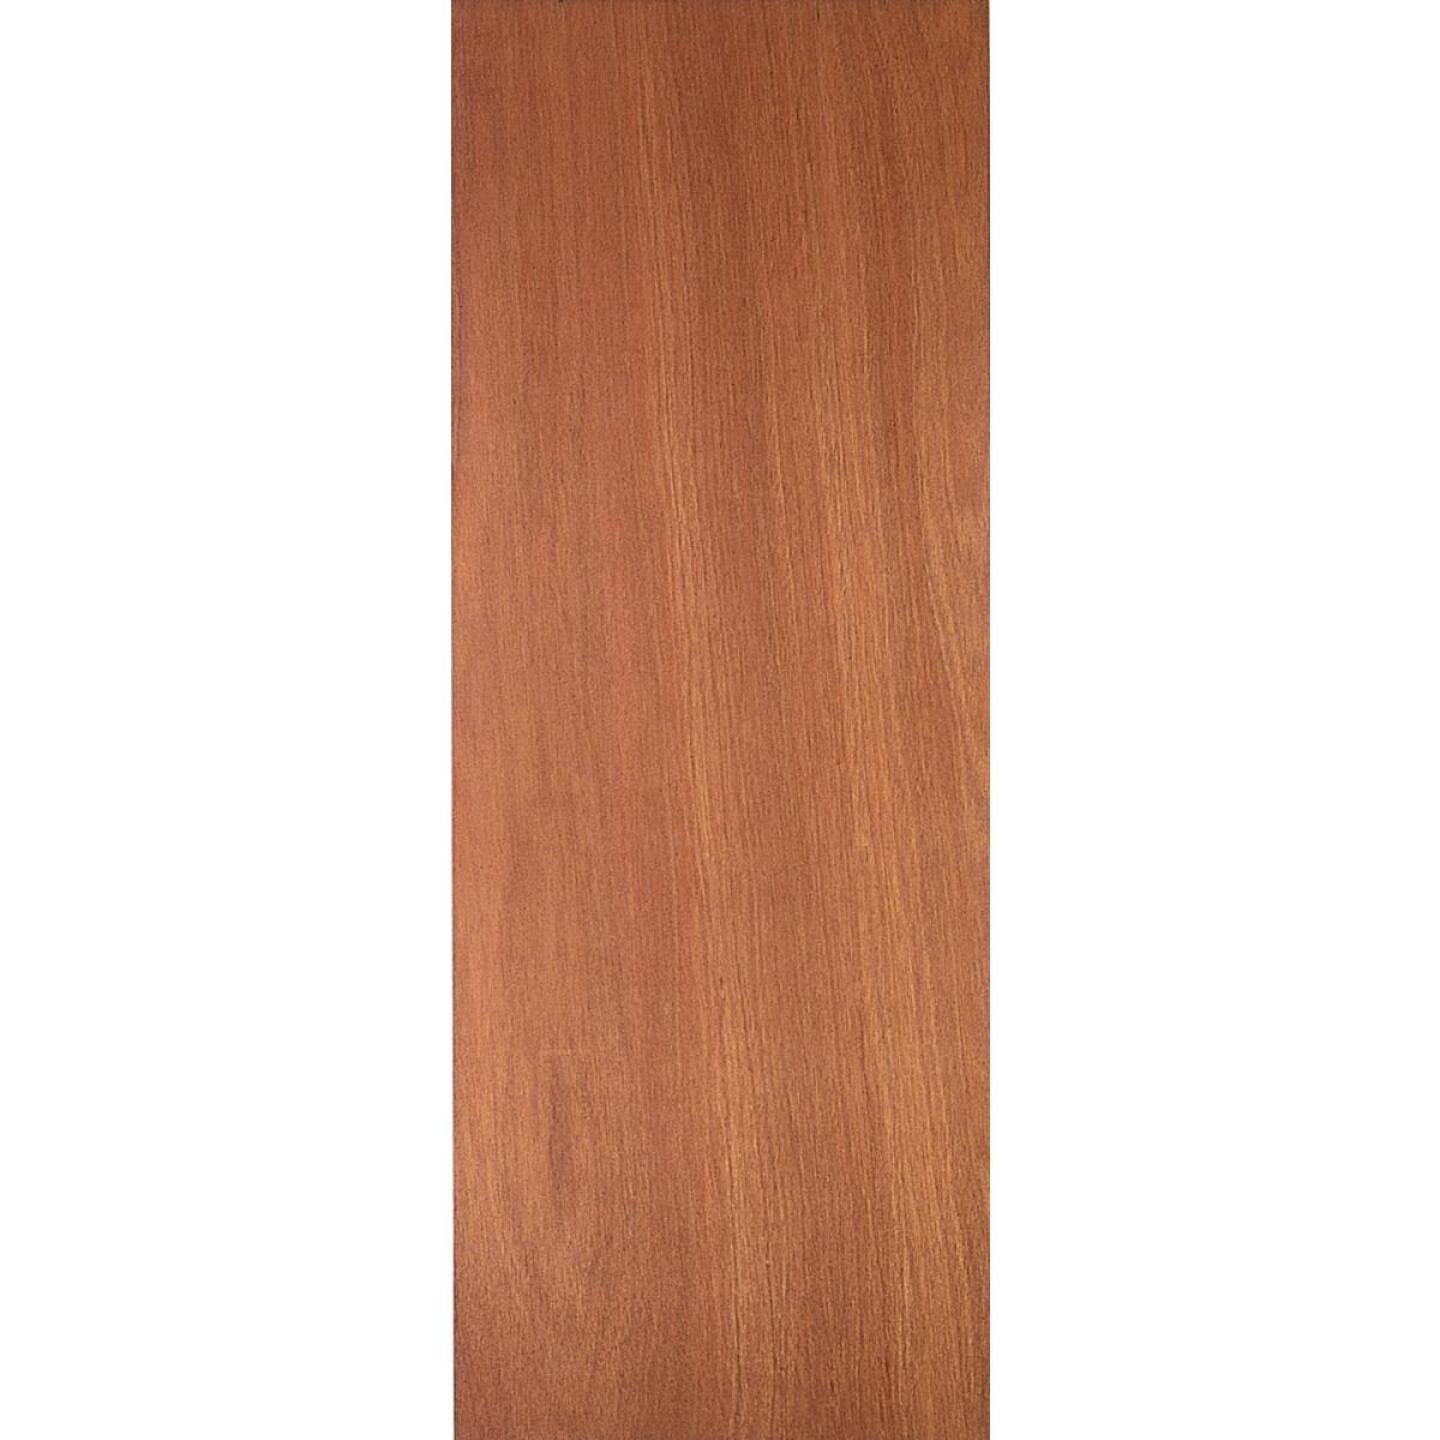 Masonite 28 In. W. x 80 In. H. Lauan Wood Interior Hollow Core Door Slab Image 1